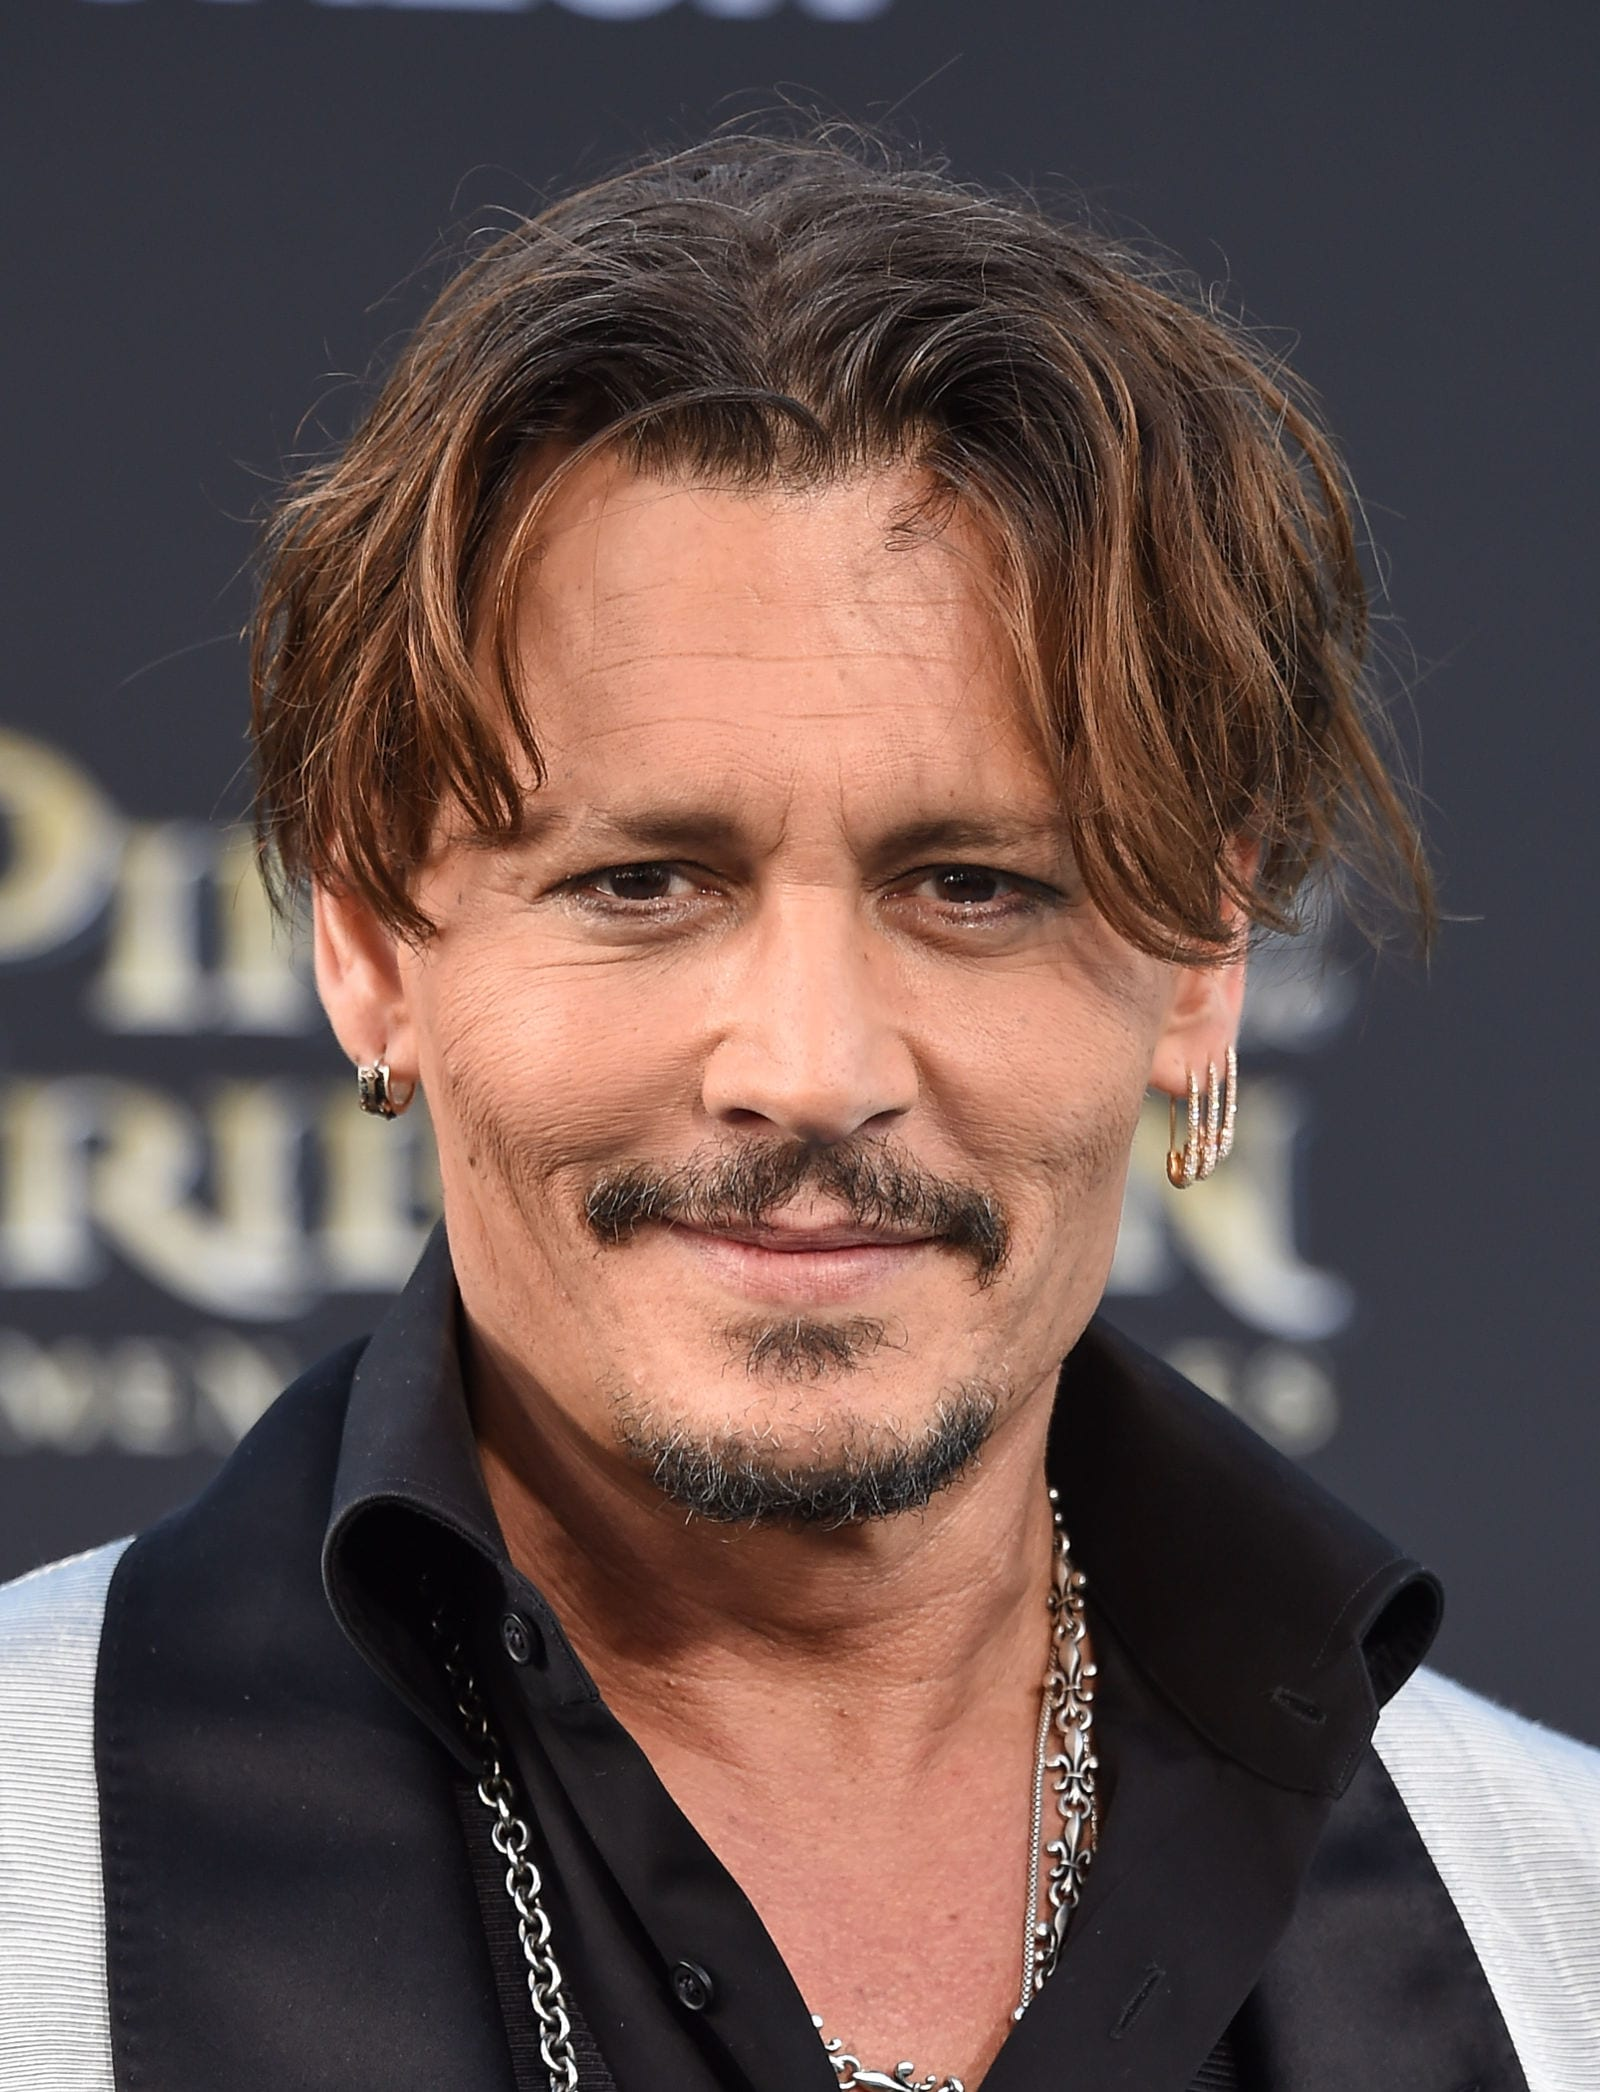 Johnny Depp curtained hairstyle by DFree